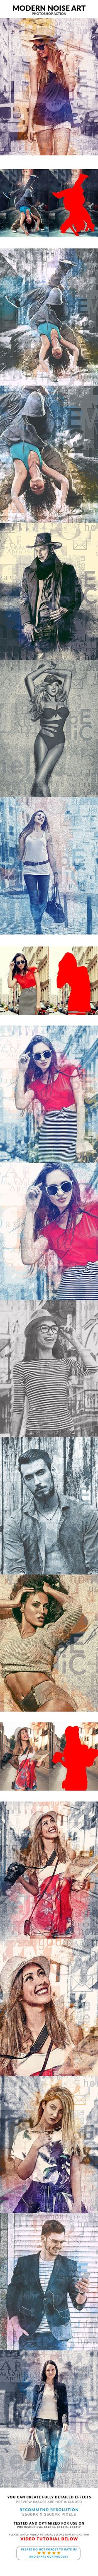 Modern Noise Art Photoshop Action - Photo Effects Actions abstract, action, art, artistic, atchitecture, design, draw, drawing, effect, exterior, hand drawn, interior, pen, pencil, photography, photoshop, professional, sketch, style, template, watercolor